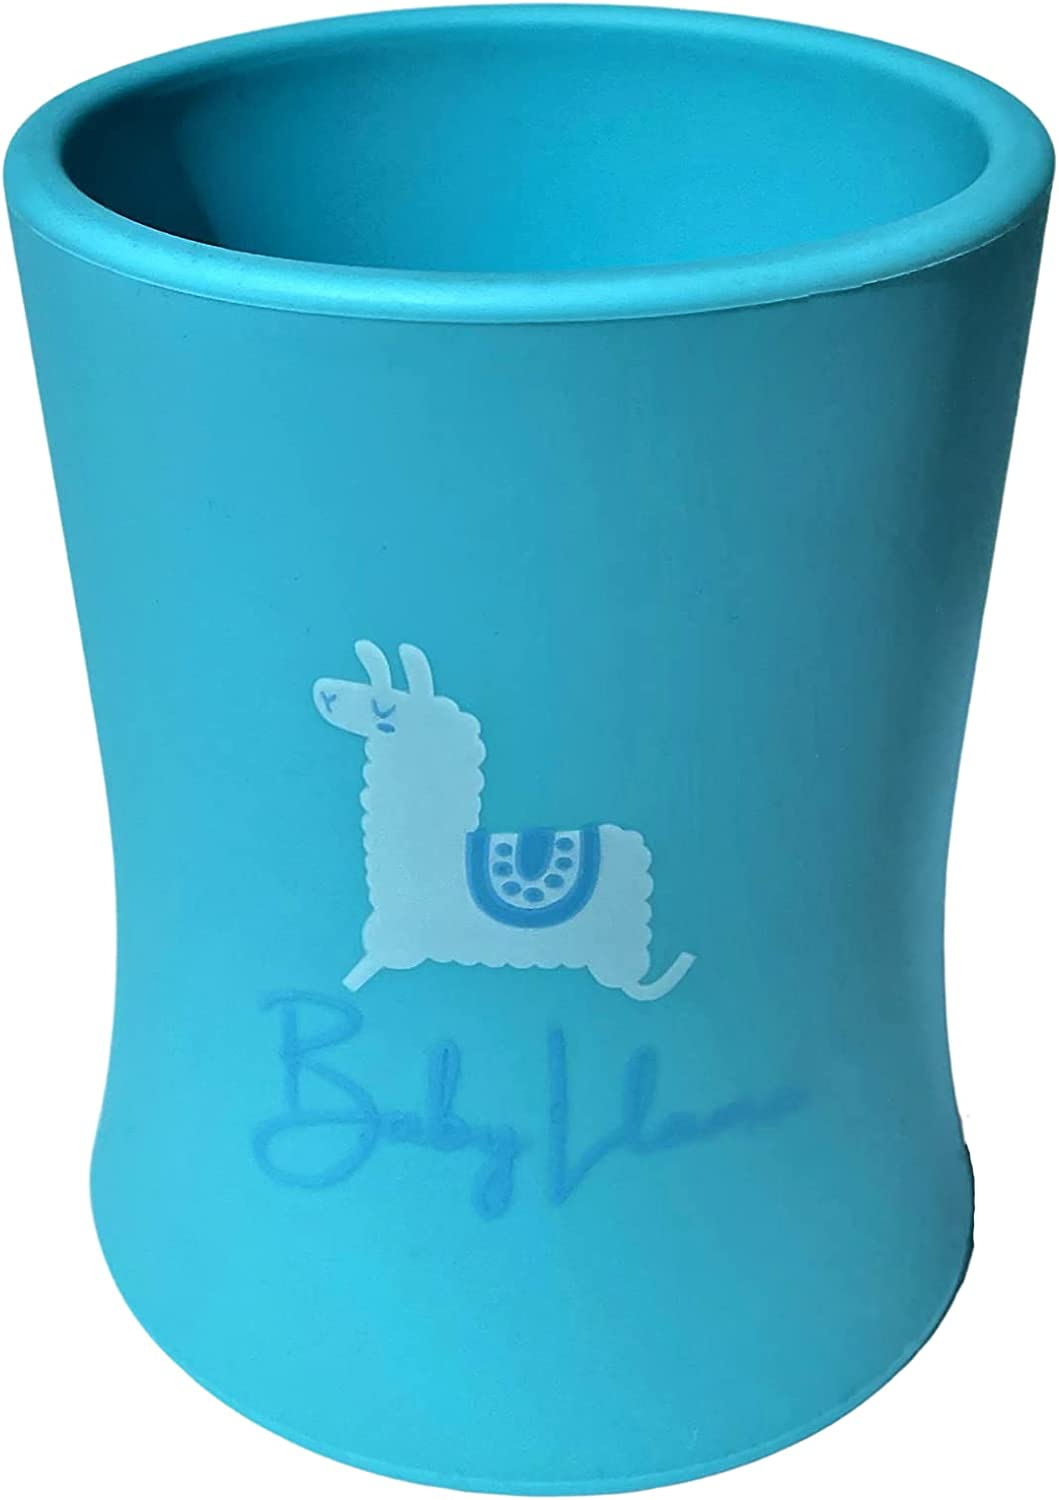 Baby Department store Max 60% OFF Toddler training cup by Llama 100% food- soft - Blue